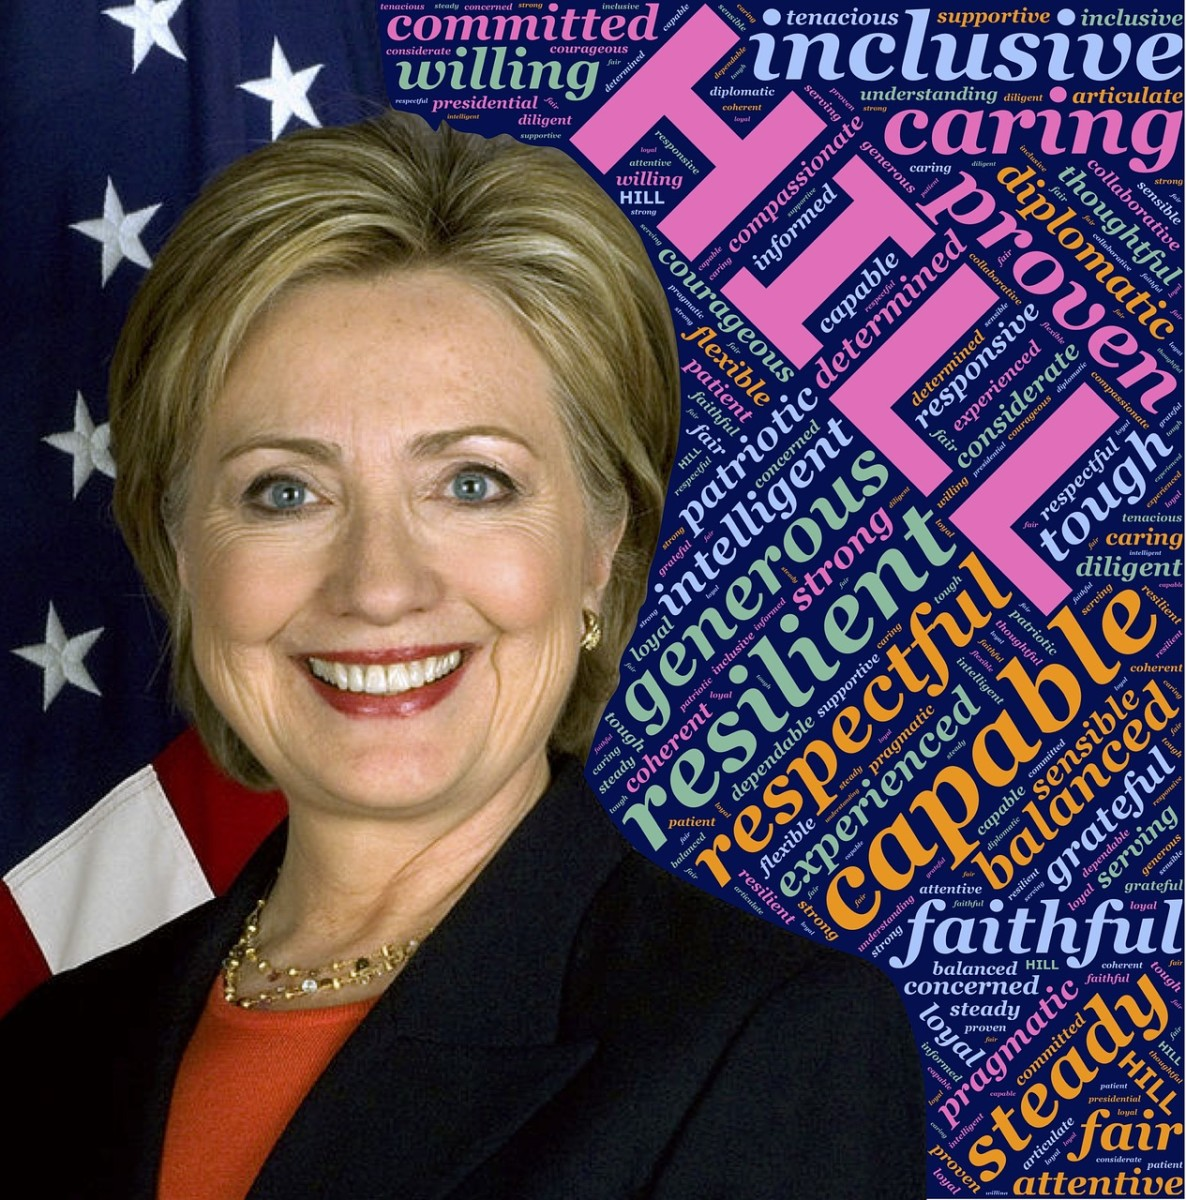 Hillary has the kind of qualities we should want in a president.